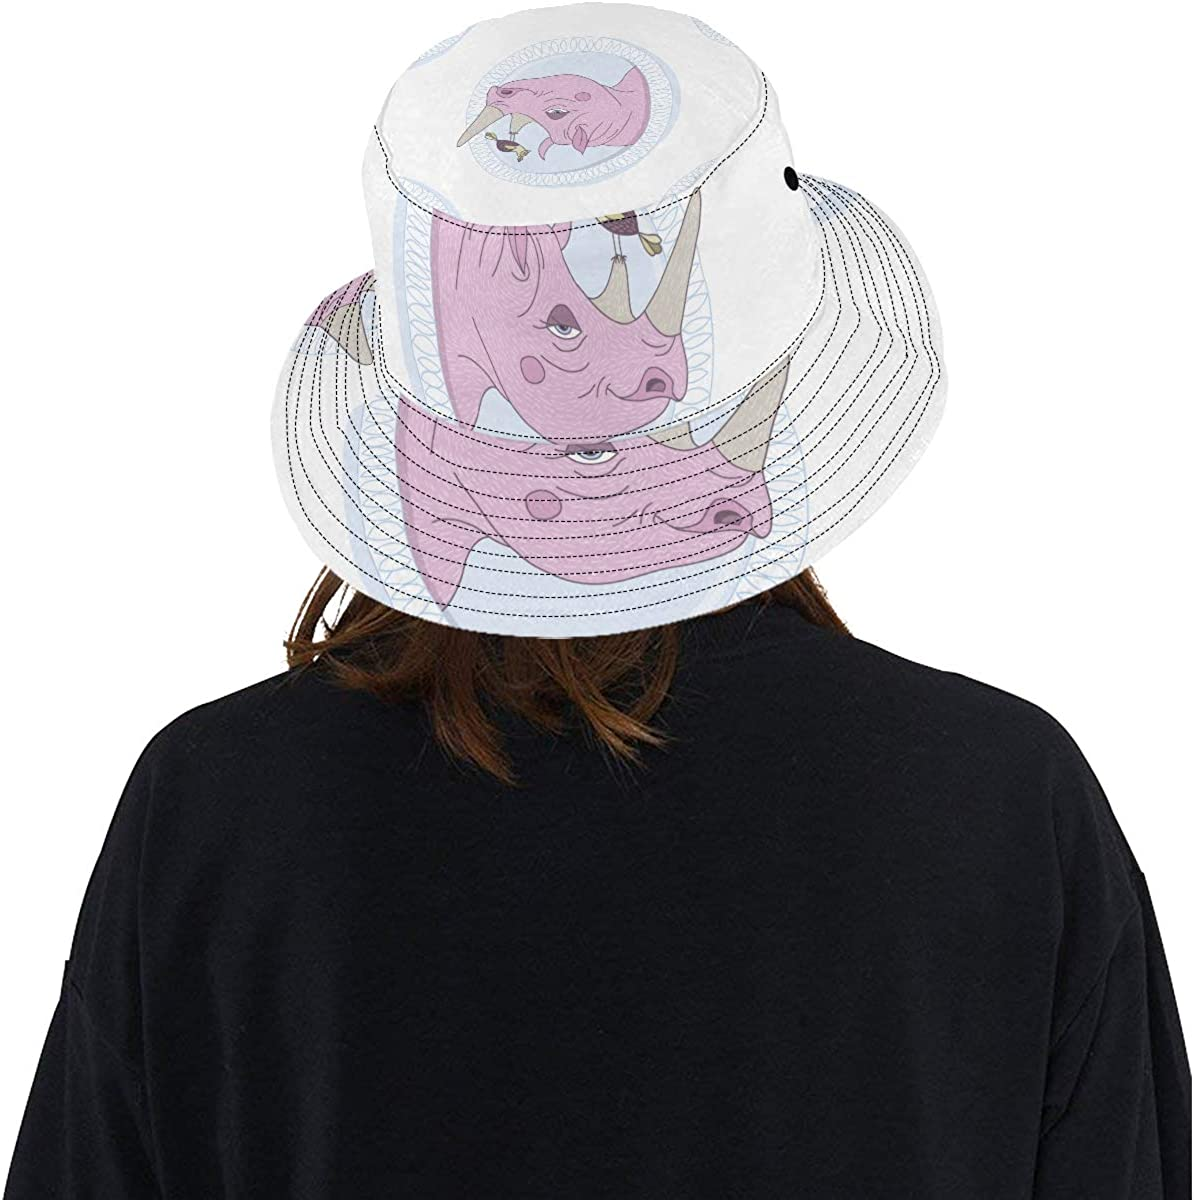 Strong Muscle Rhino Summer Unisex Fishing Sun Top Bucket Hats for Kid Teens Women and Men with Packable Fisherman Cap for Outdoor Baseball Sport Picnic